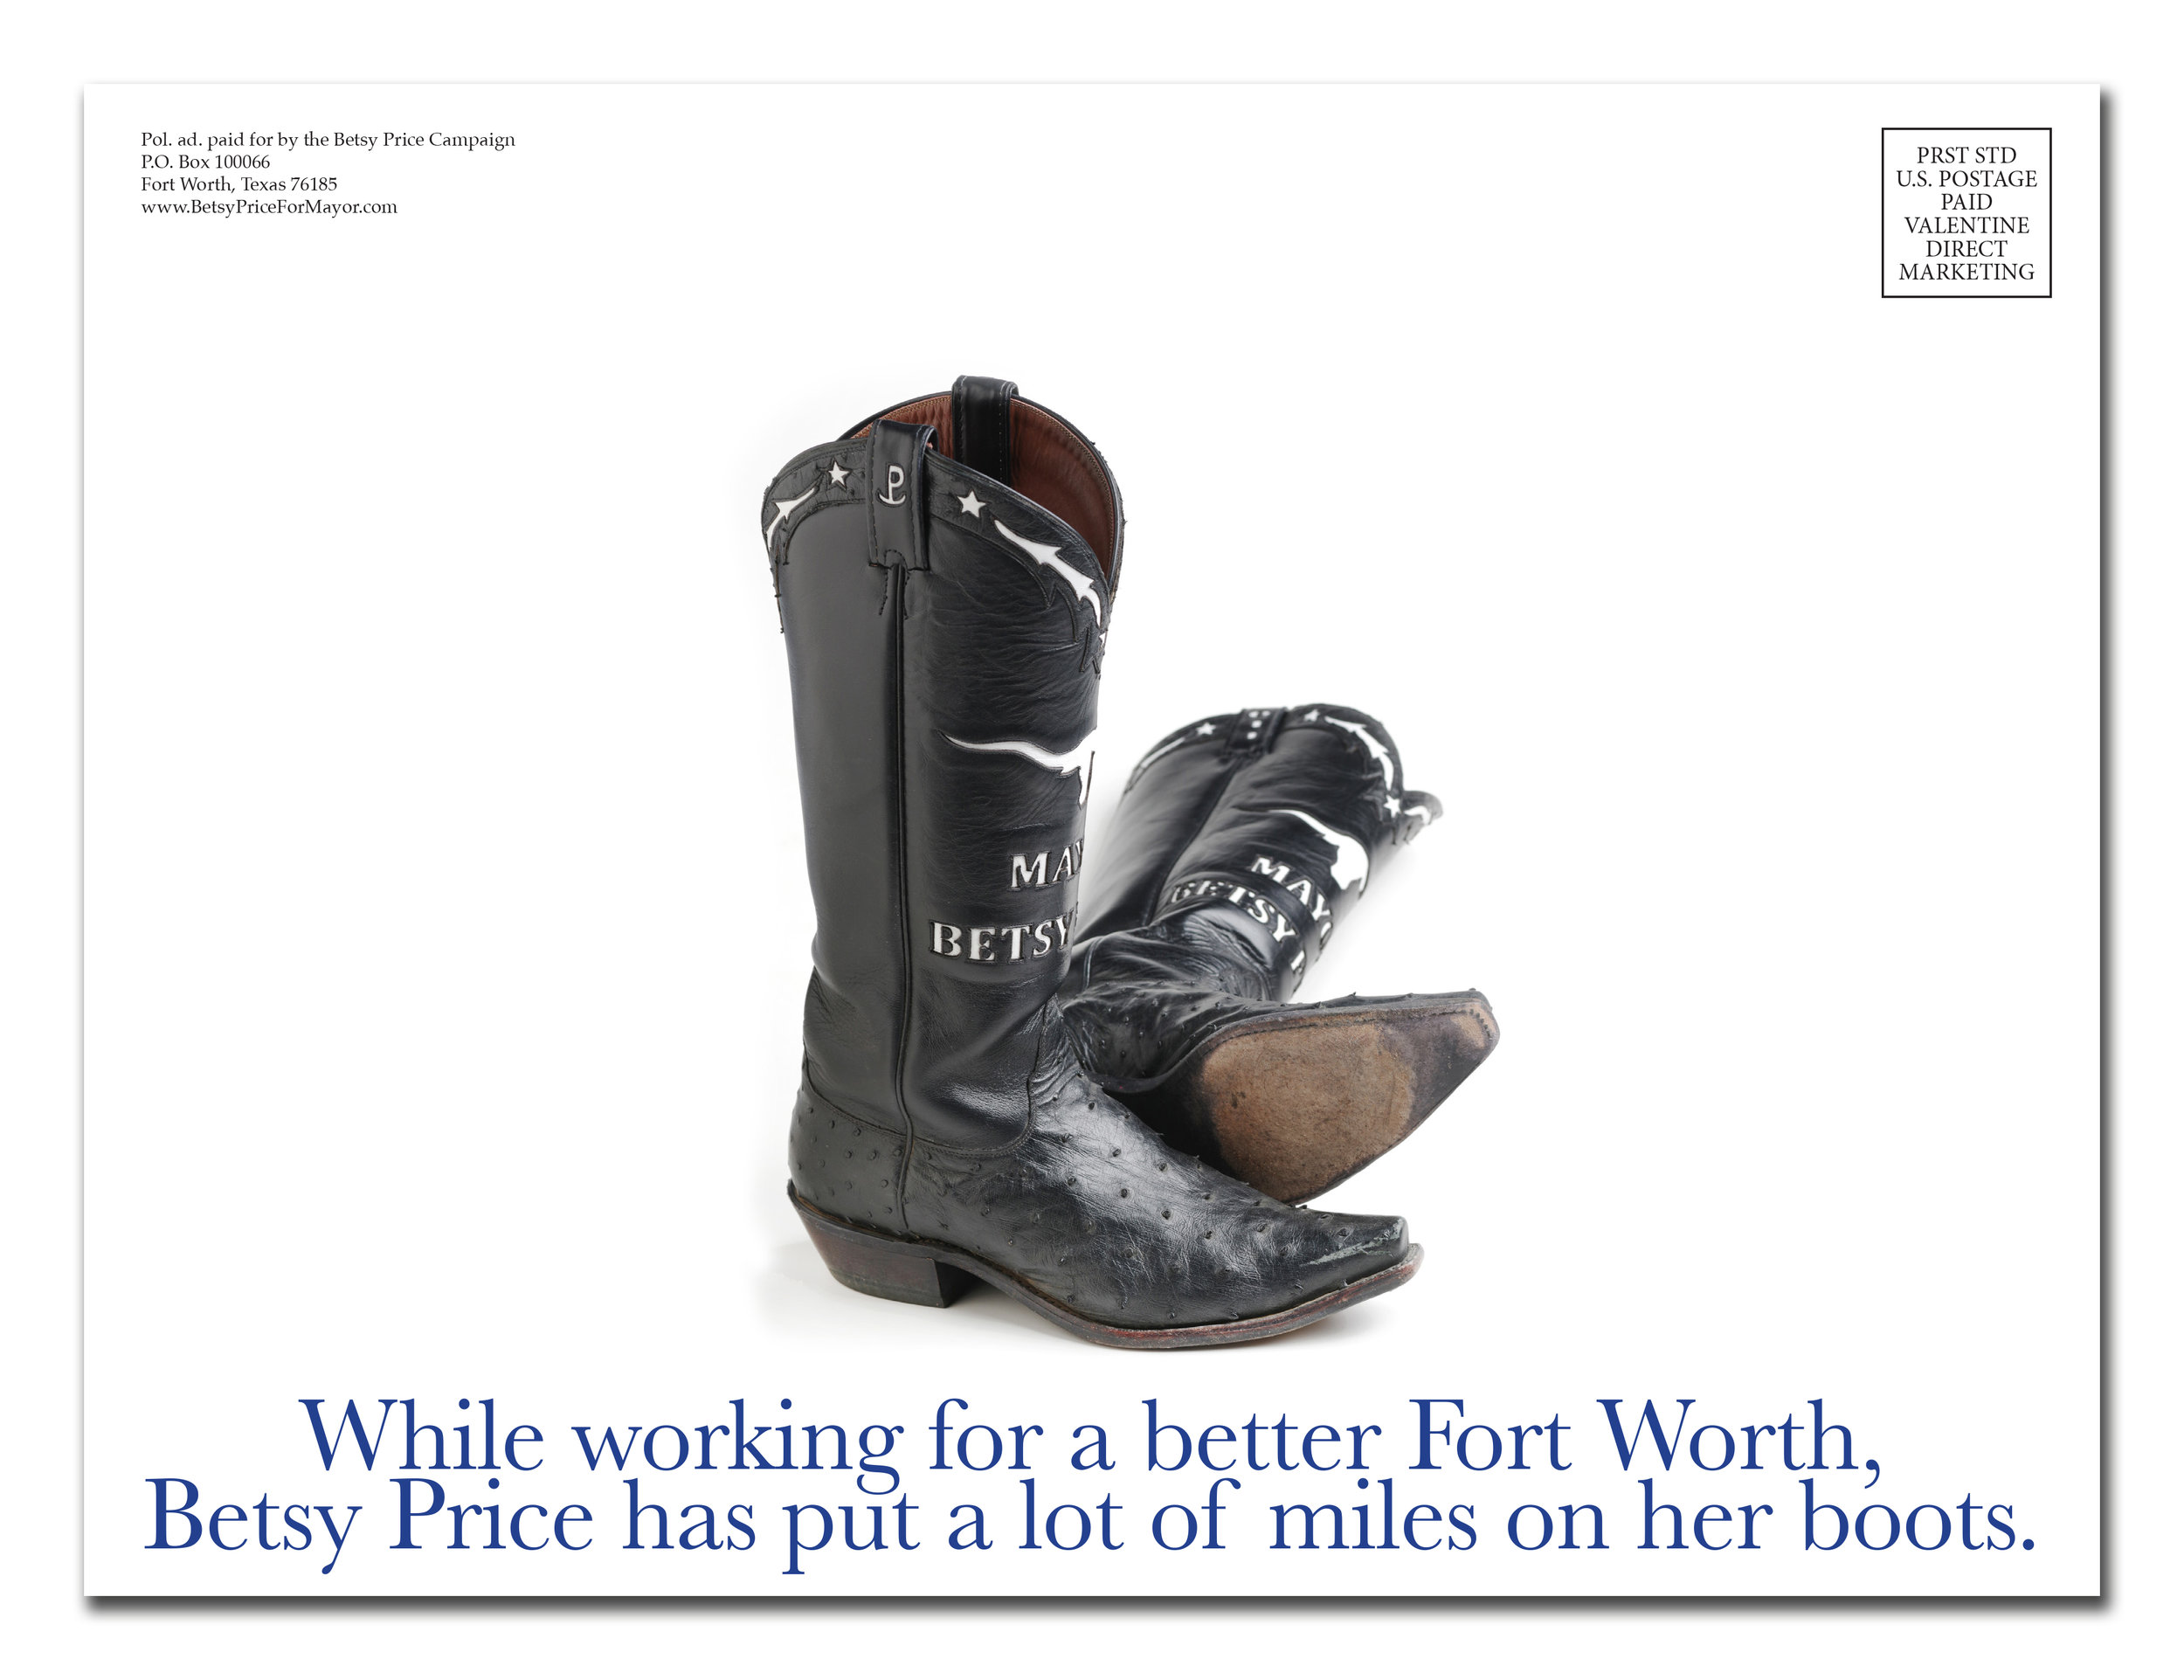 Betsy_Price_Boots_Miles.jpg